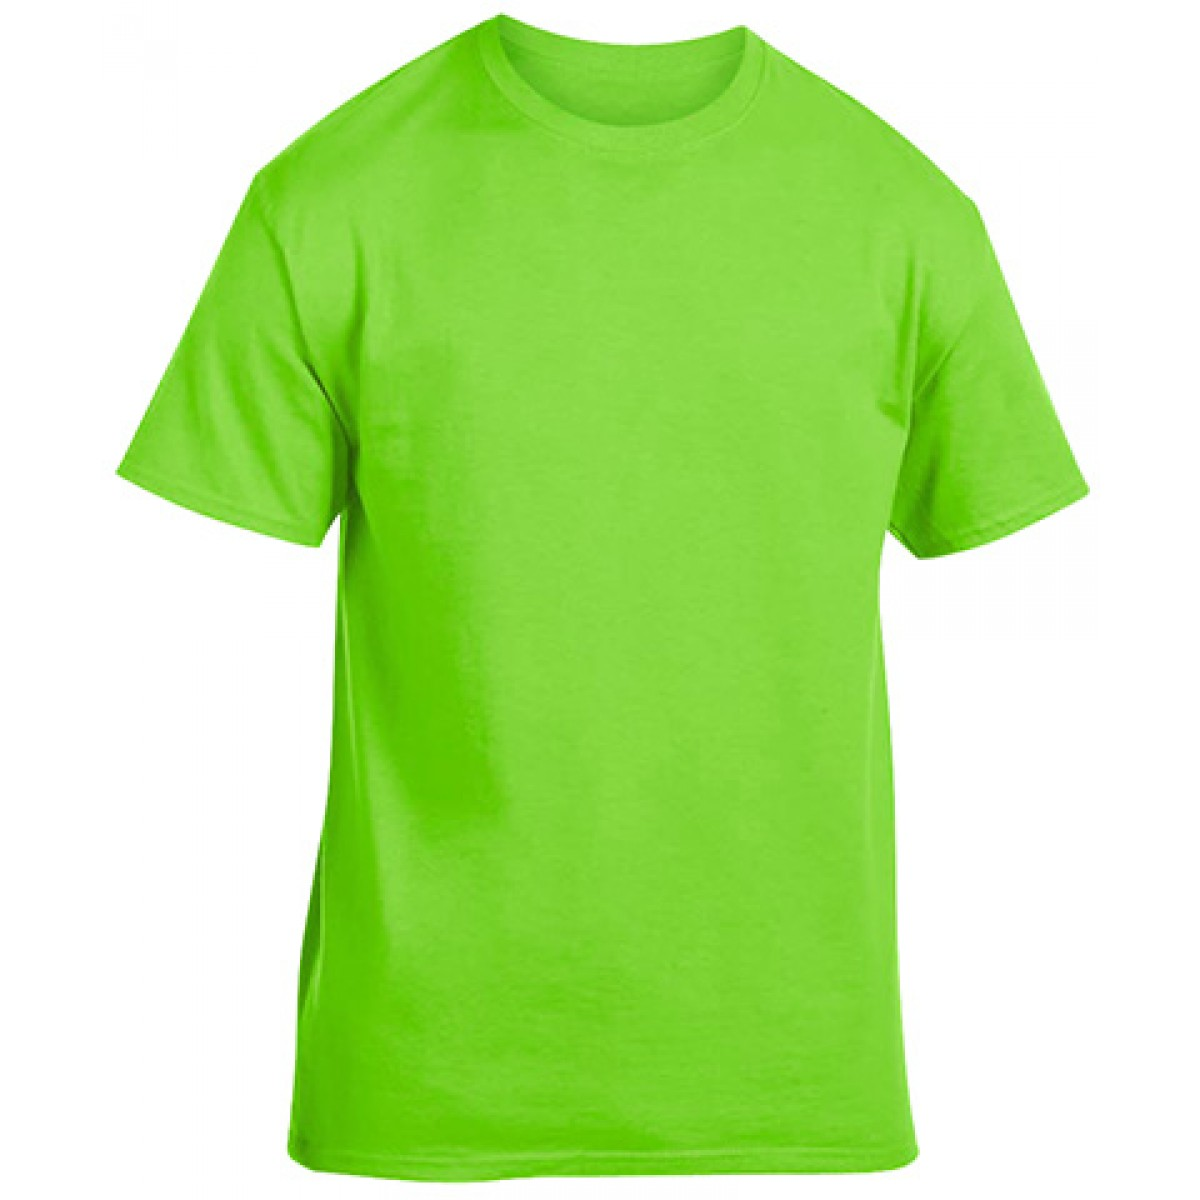 Soft 100% Cotton T-Shirt-Neon Green-XL